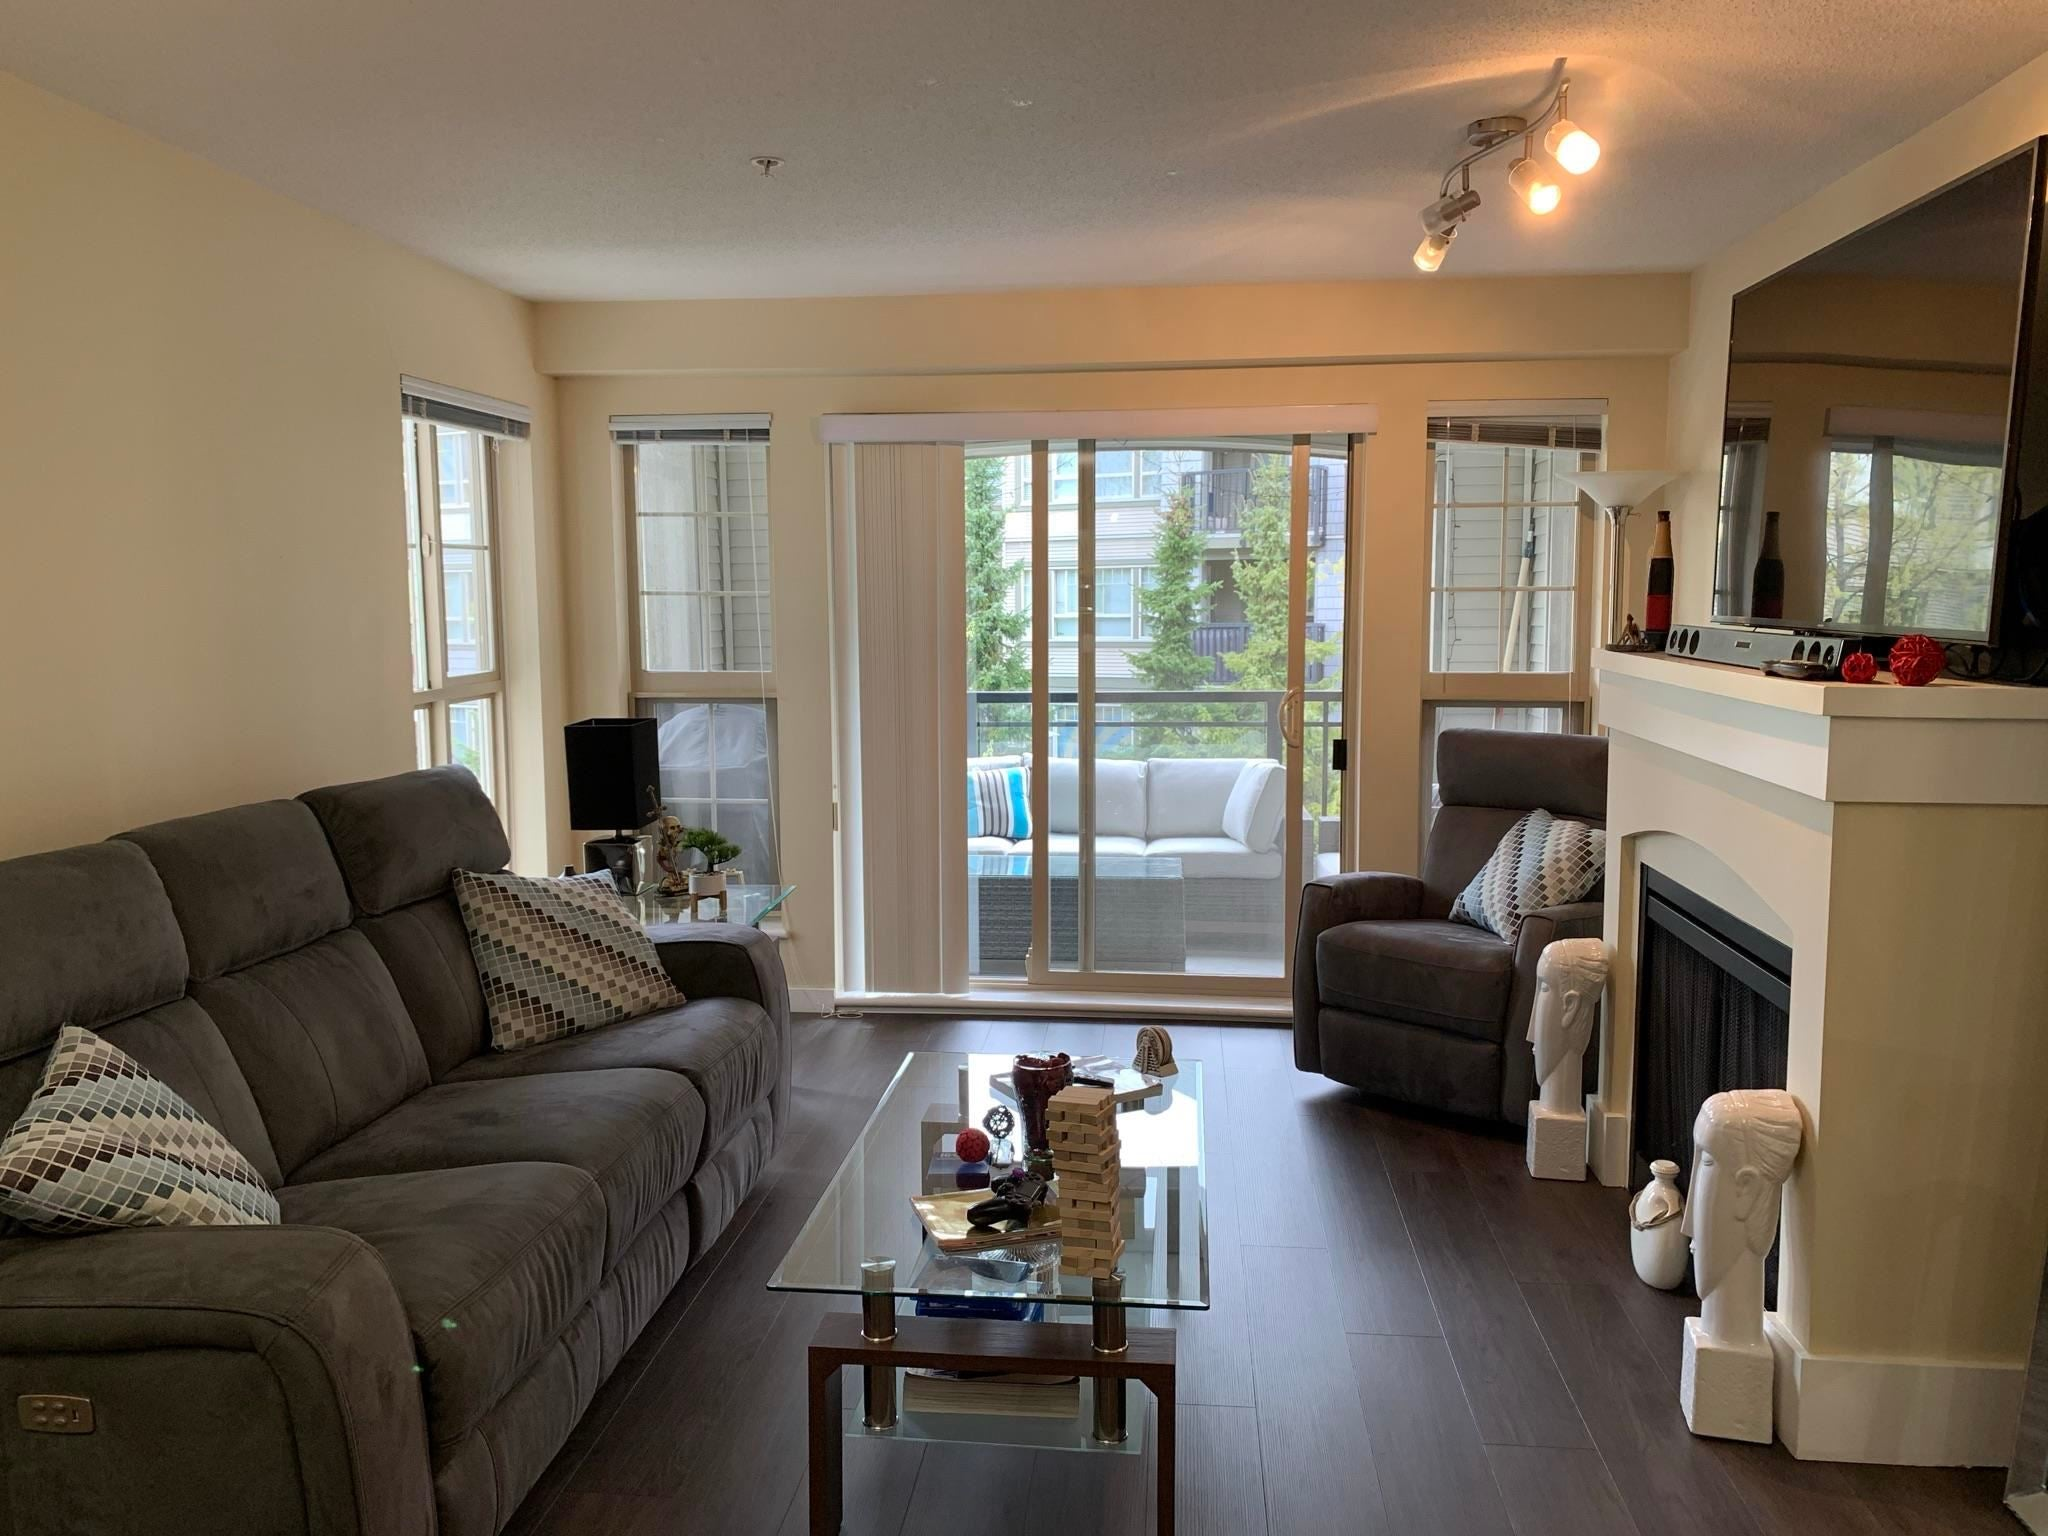 314 2958 SILVER SPRINGS BOULEVARD - Westwood Plateau Apartment/Condo for sale, 2 Bedrooms (R2604136) - #6